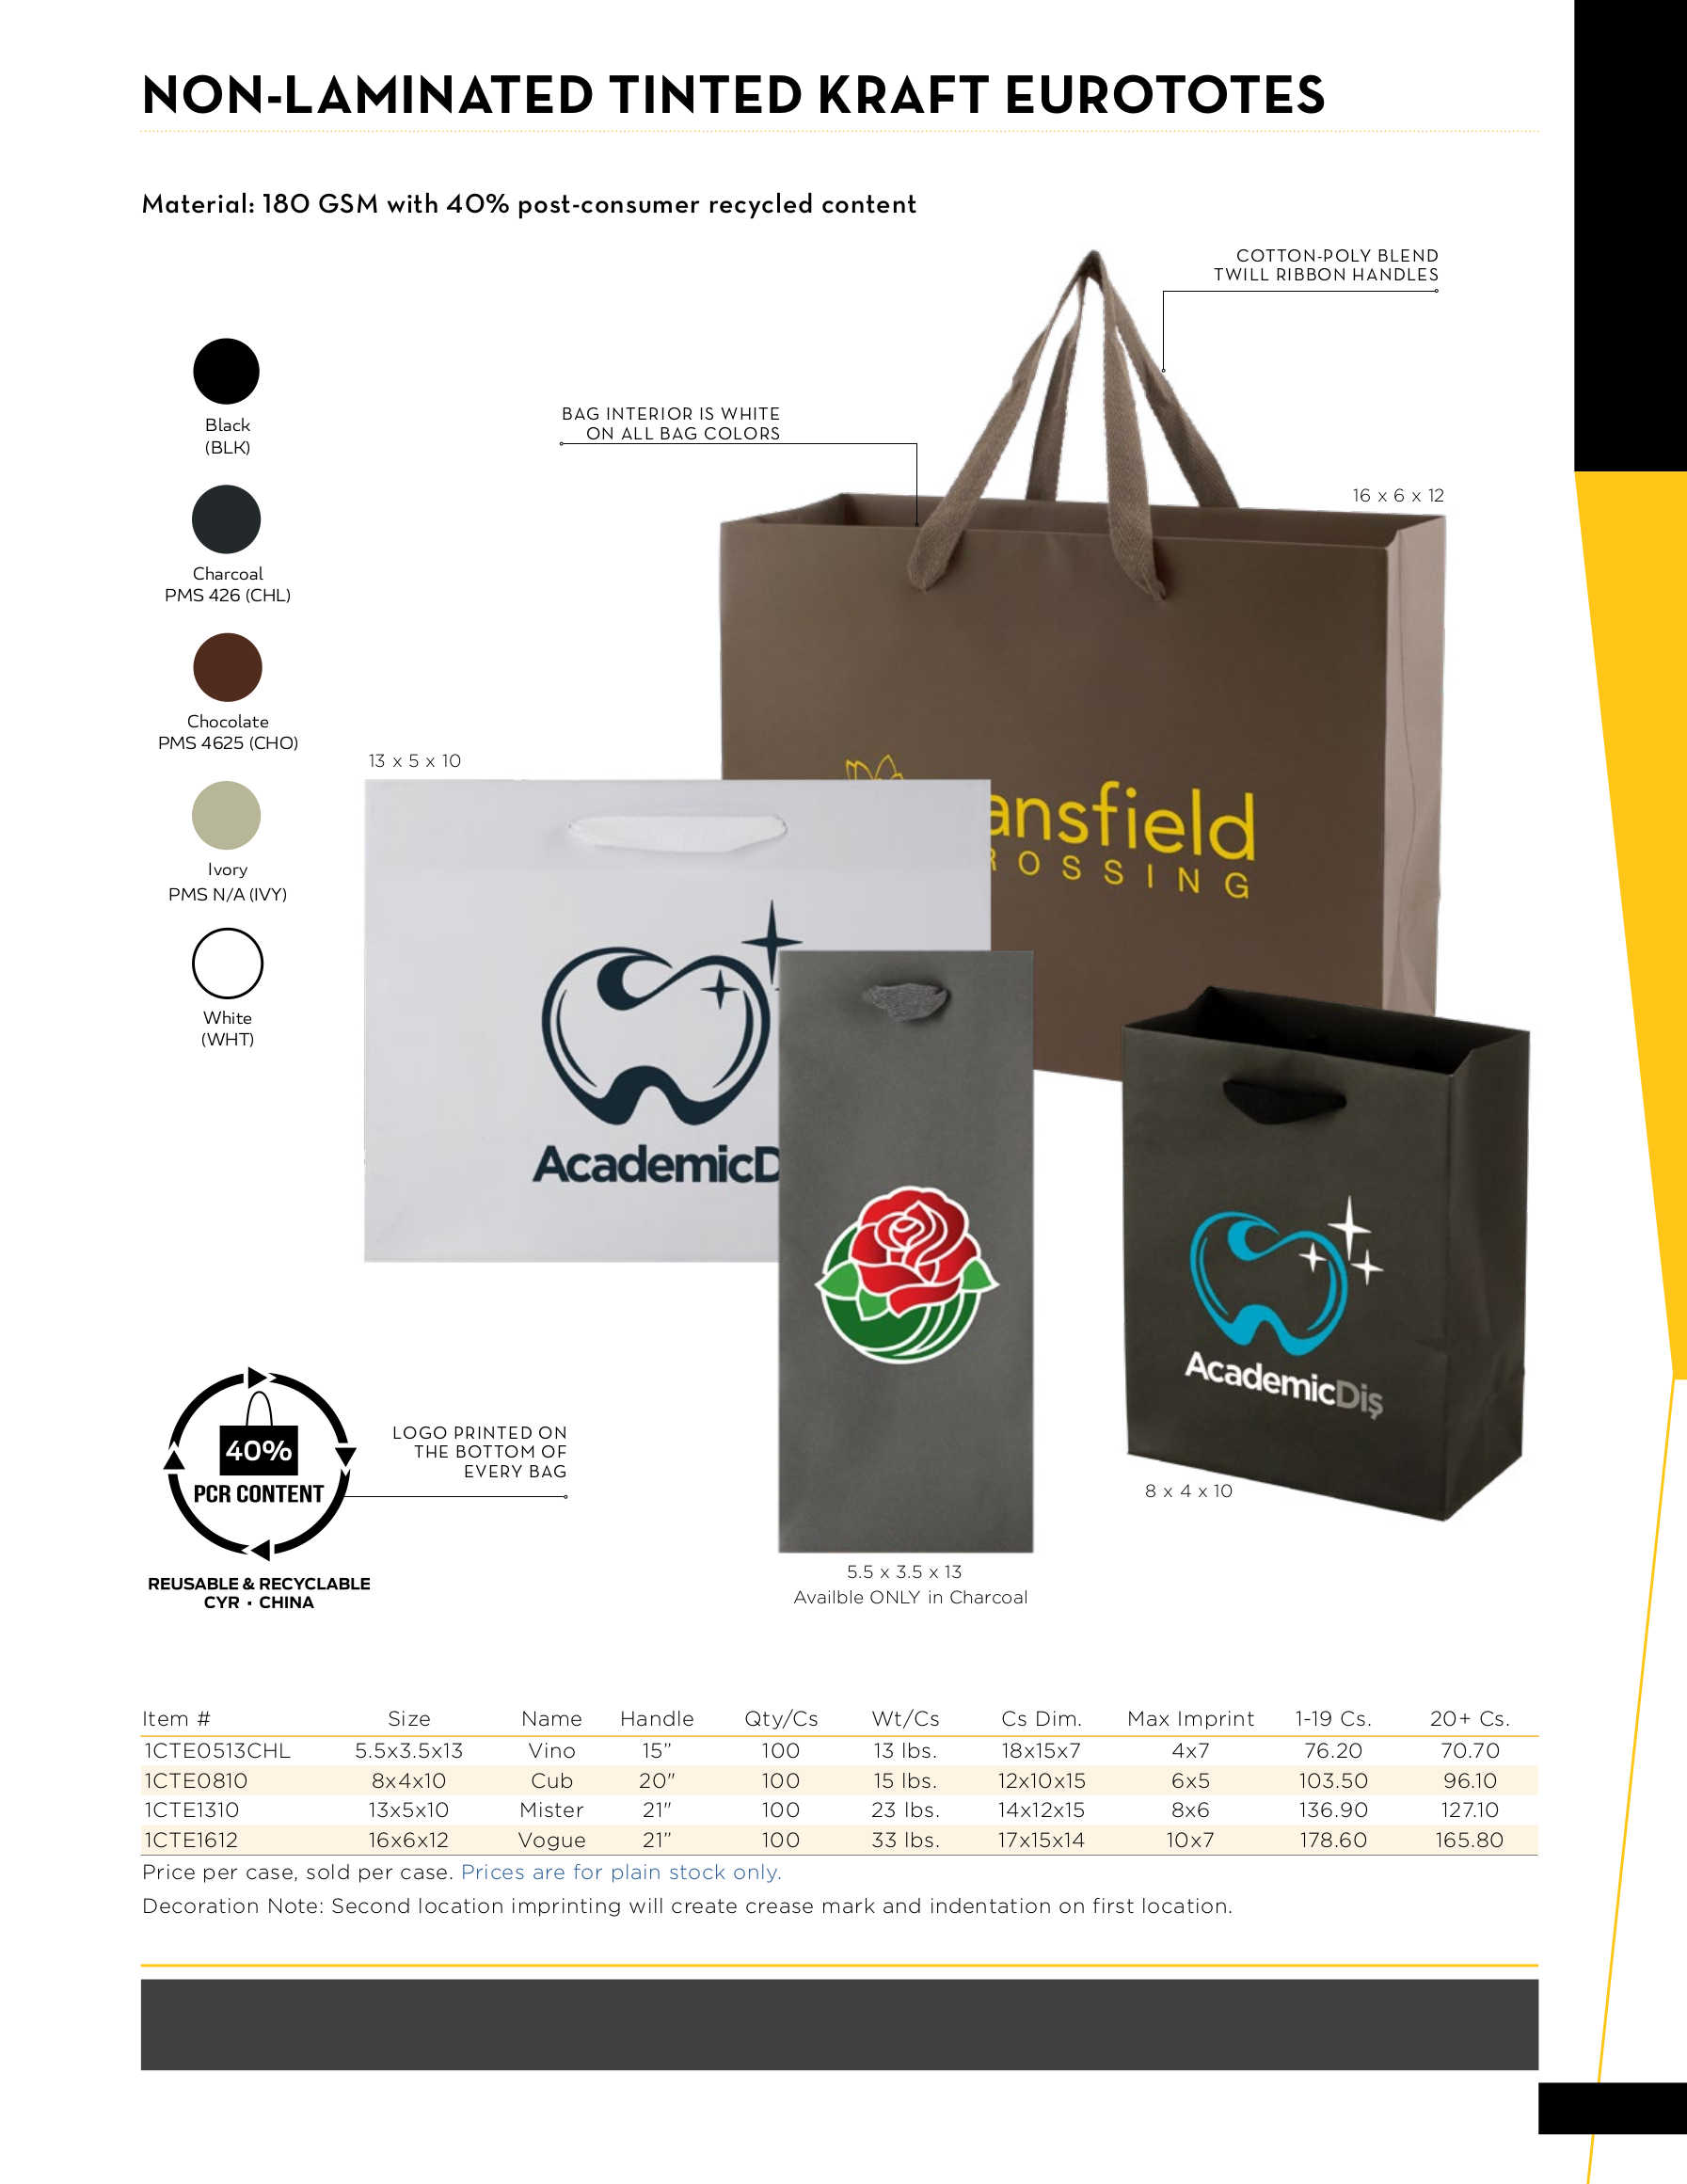 Non-Laminated Tinted Kraft Euro Totes